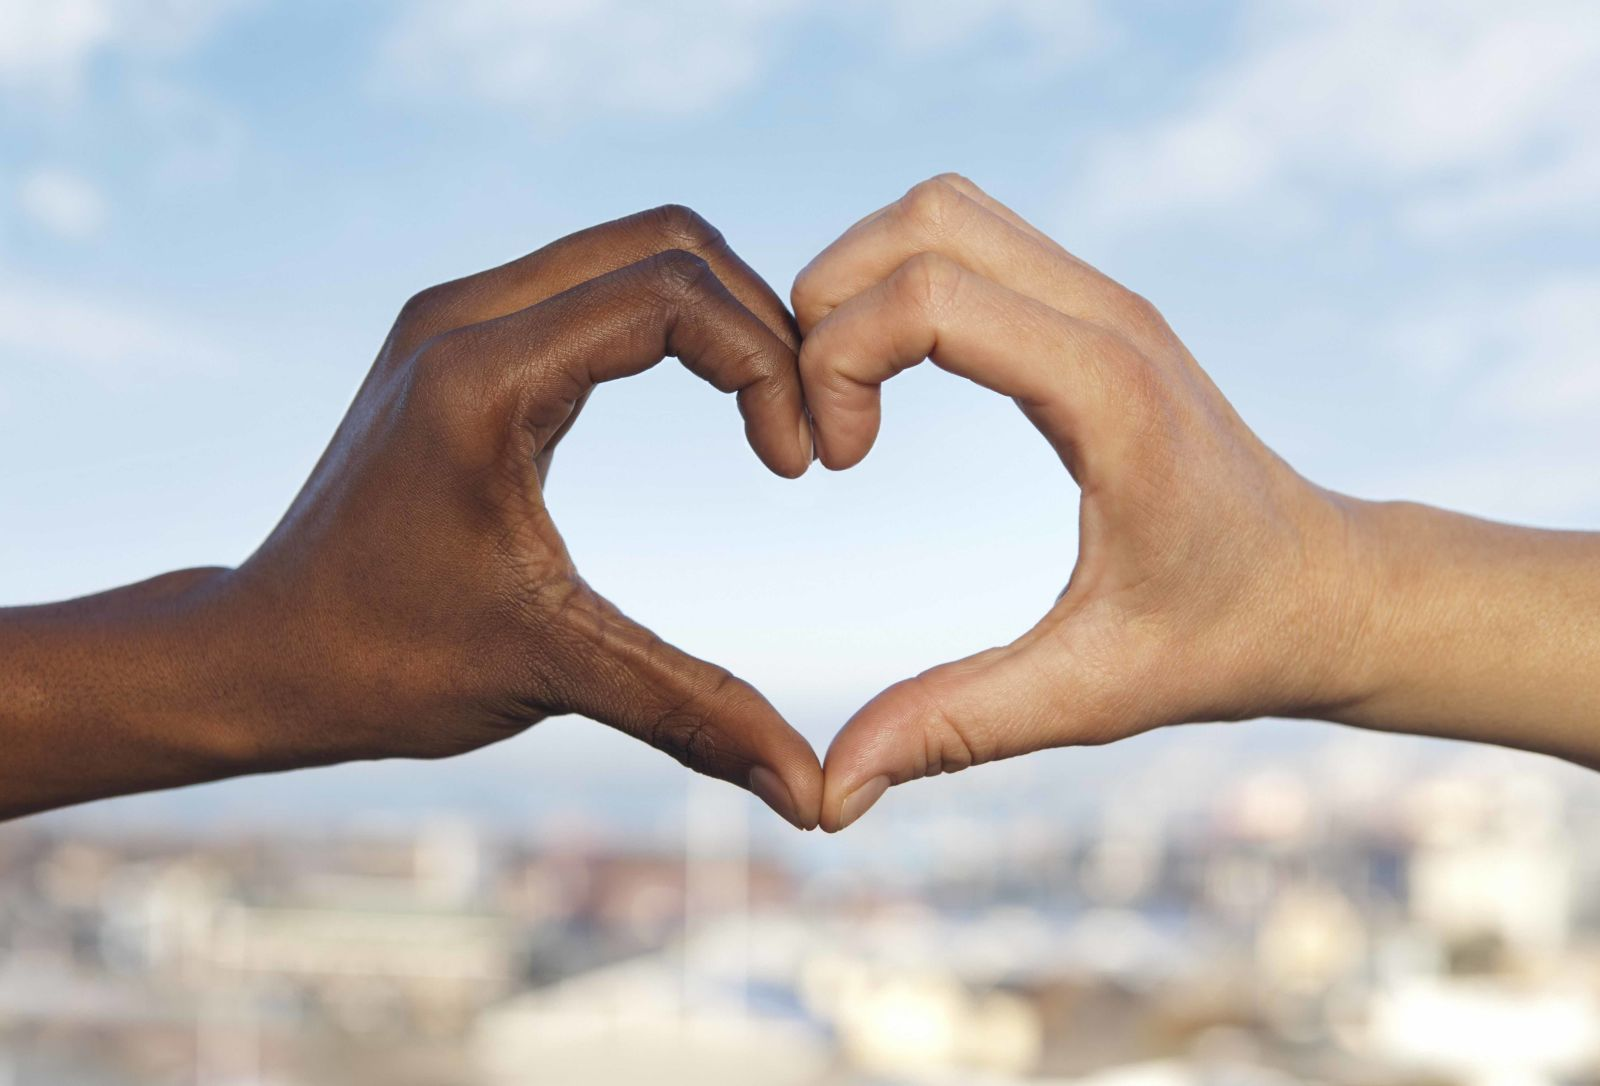 Interracial Love Quotes 10 Signs Your Partner Is The World's Best Spouse  Relationships